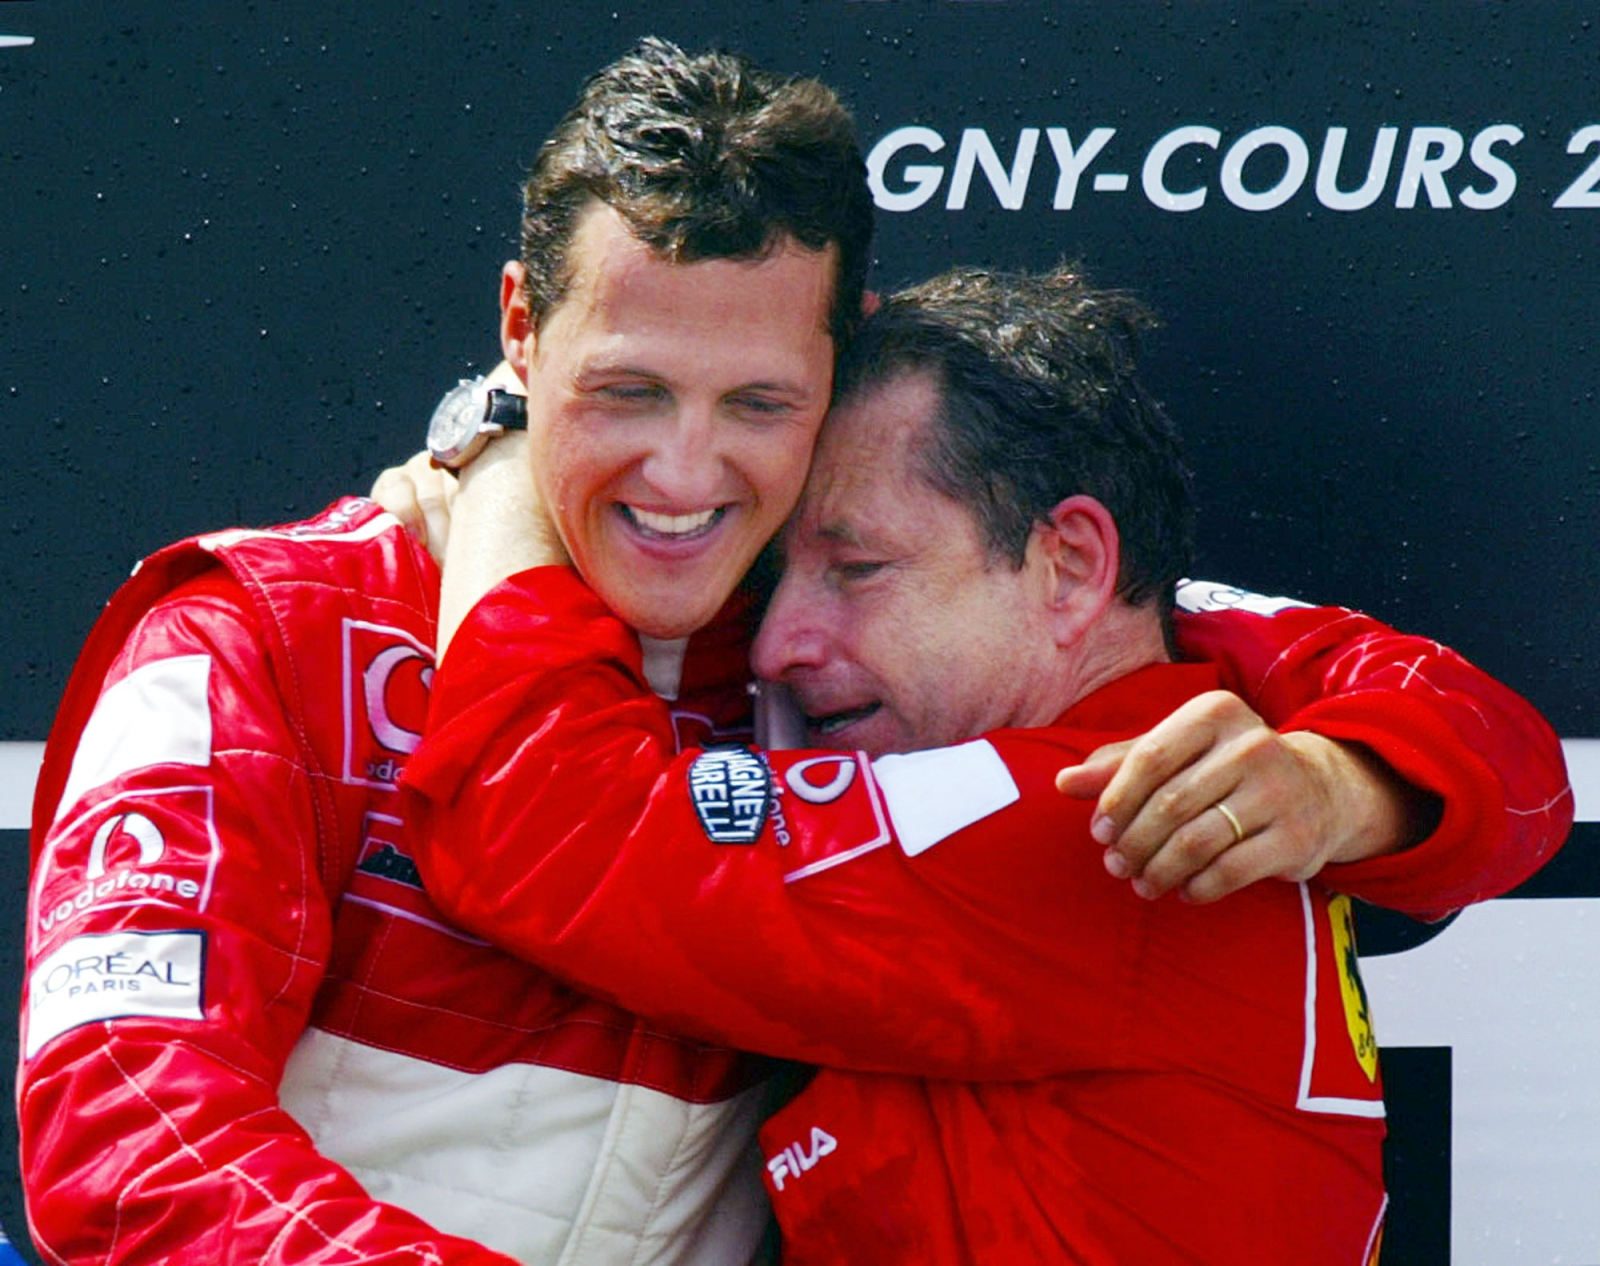 Michael Schumacher 'still fighting' two years after ...